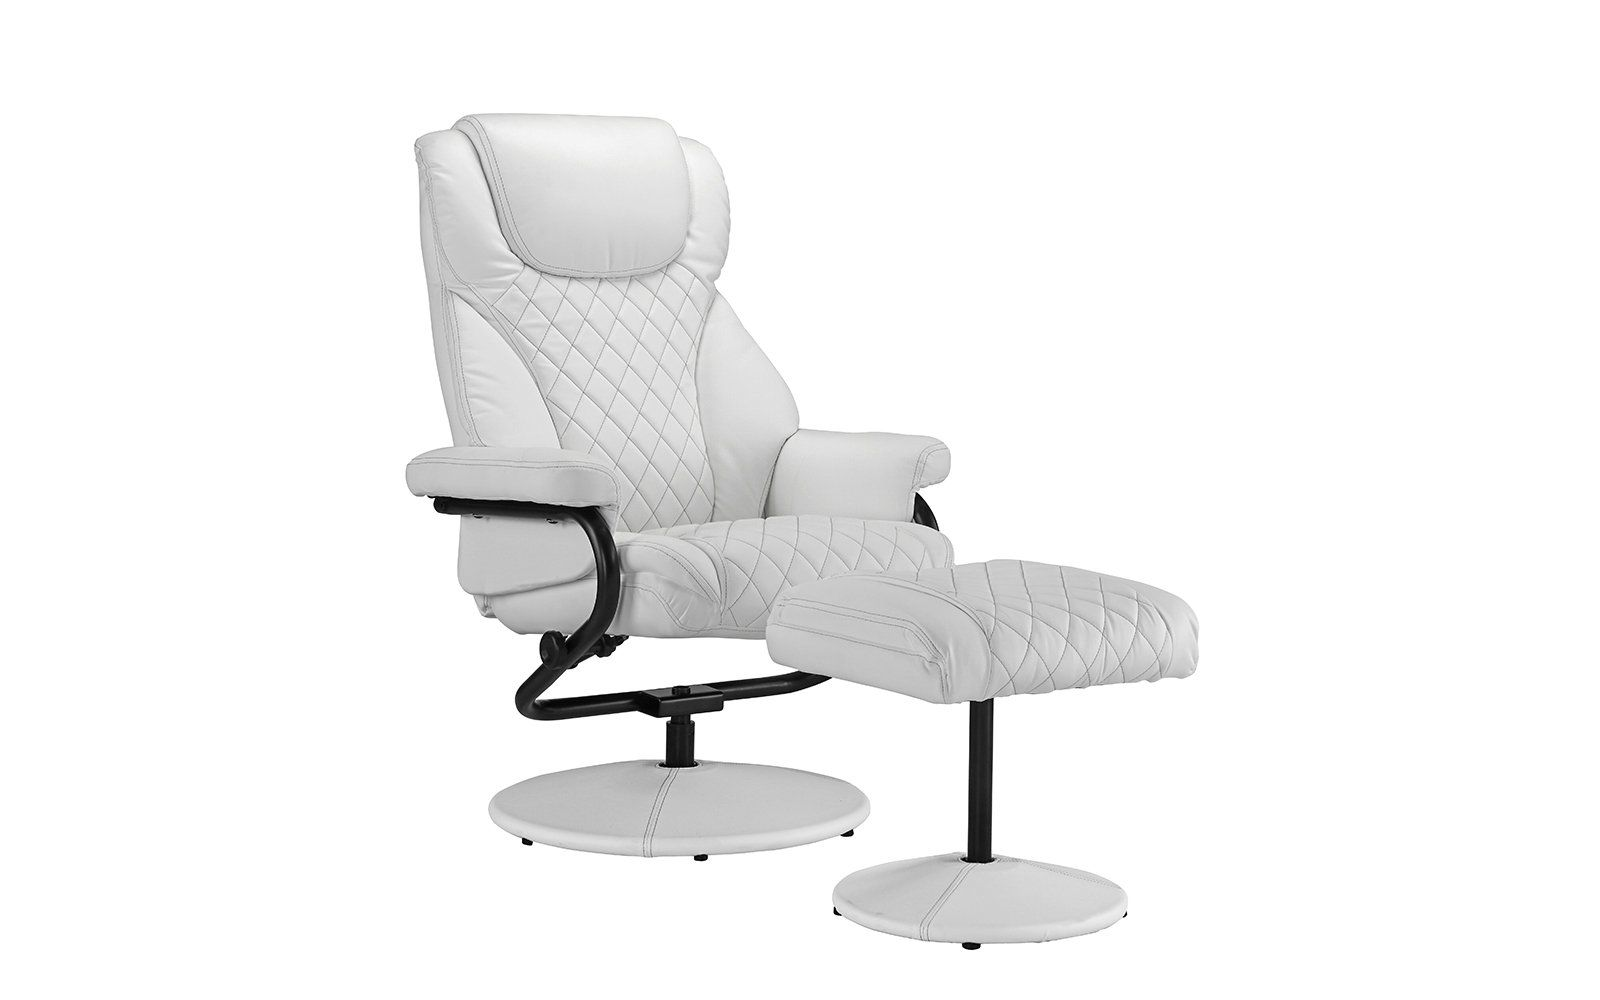 Office Swivel Chair With Footstool Faux Leather Reclining Executive And Gaming Chairs White Be Used Office Chairs Lounge Chairs Living Room Chairs For Rent